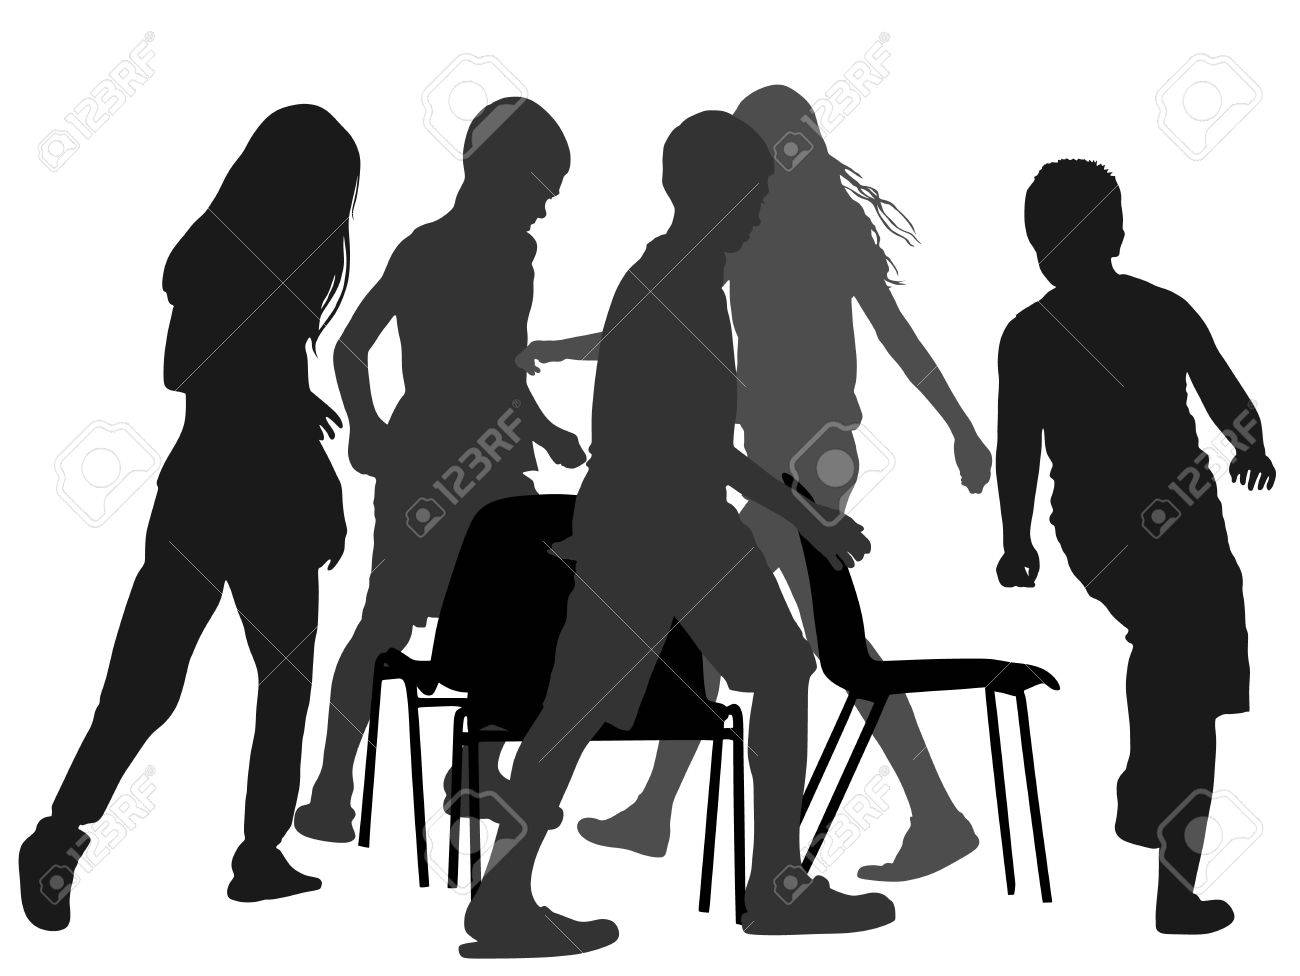 Children playing music chair game, vector silhouette illustration.